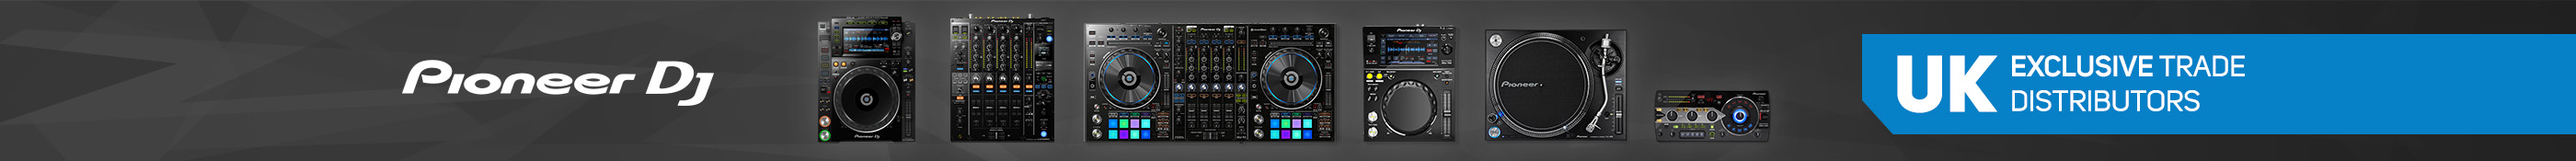 Sound - Pioneer DJ Exclusive Distributor